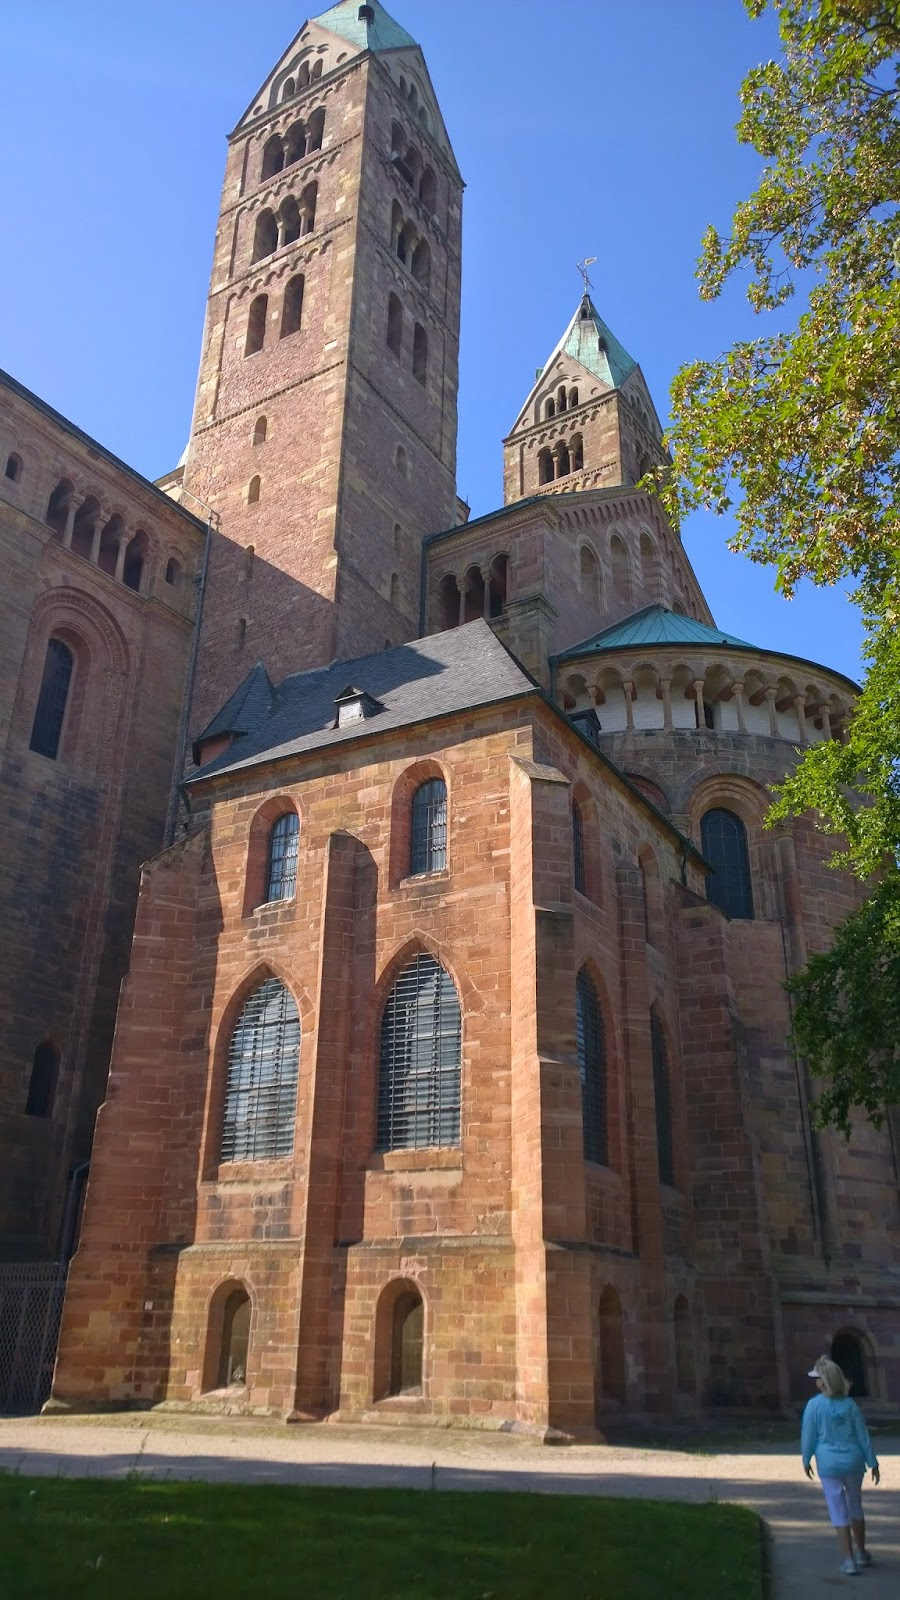 Cathedral, Dom, Duomo - Speyer